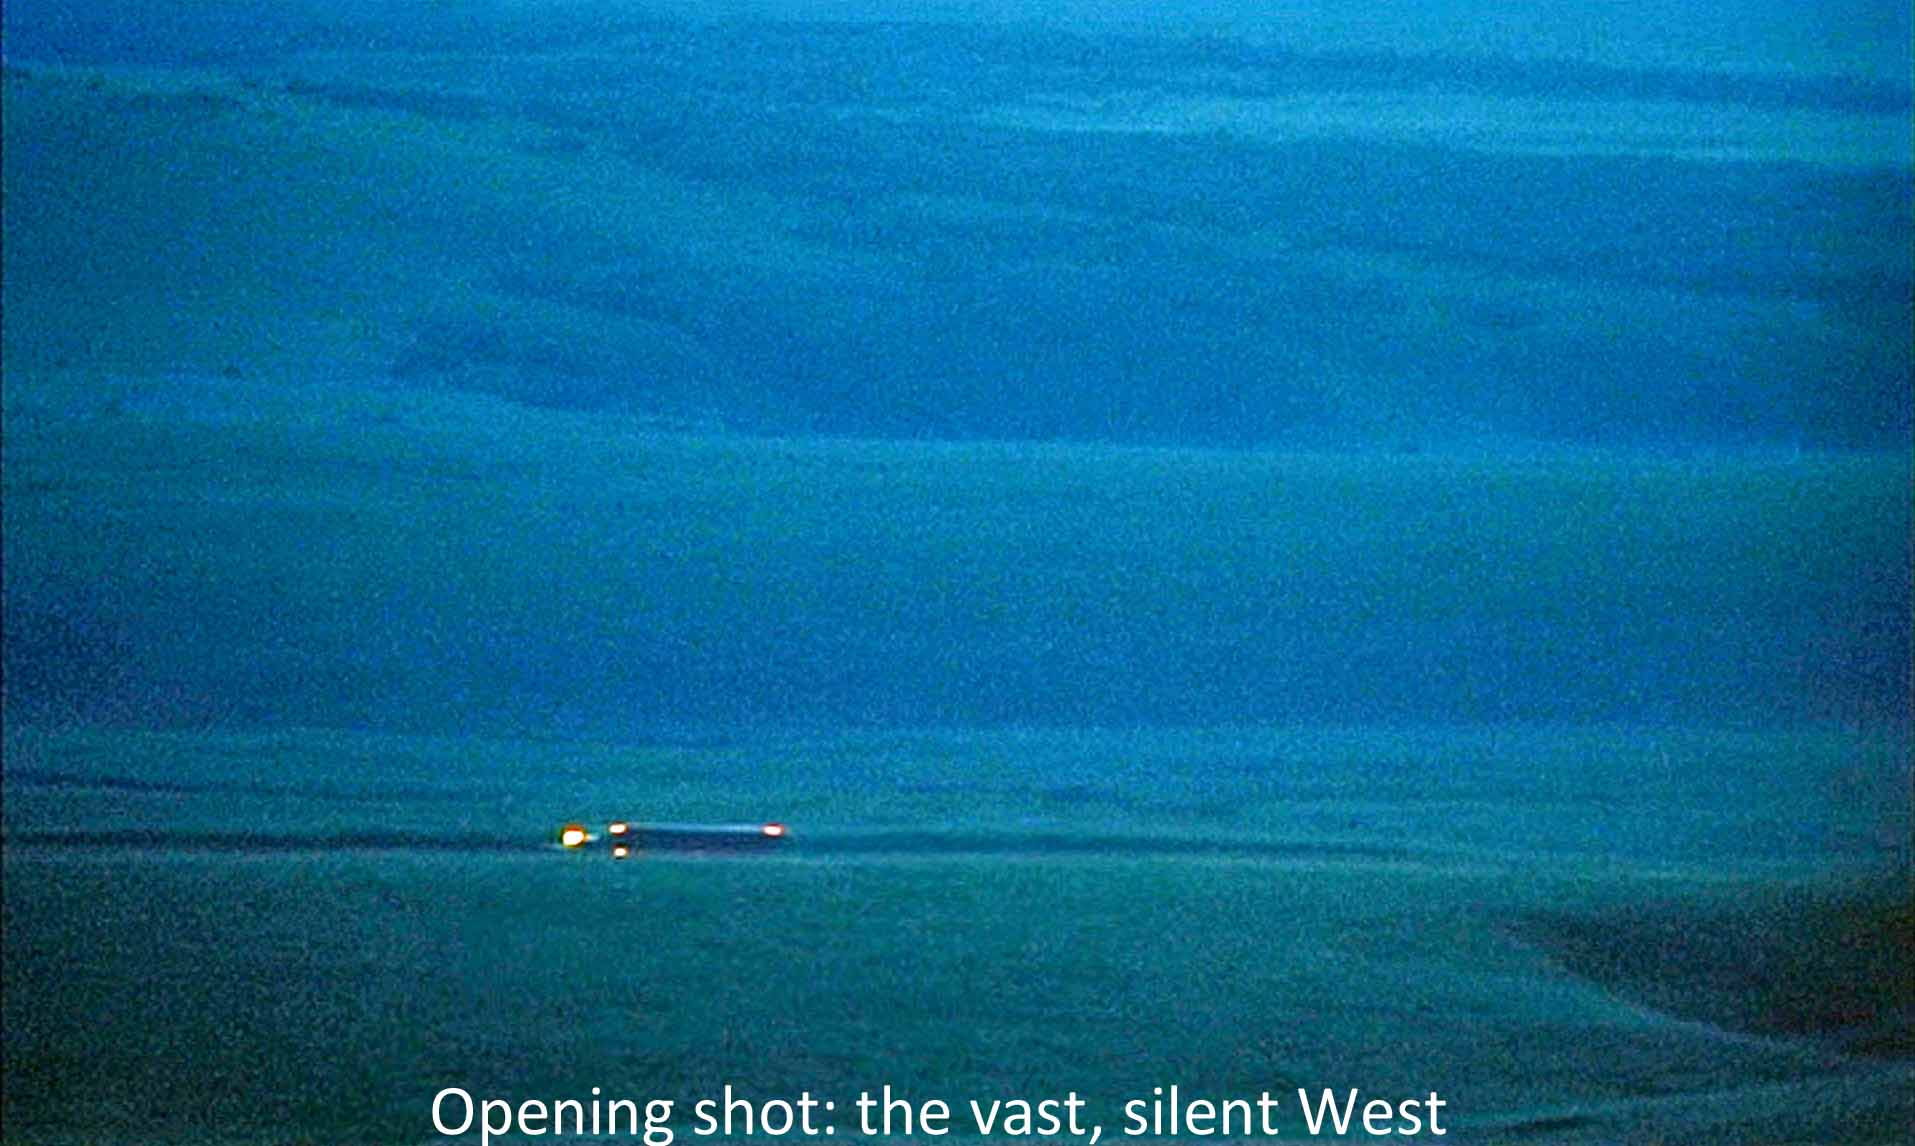 Opening shot: the vast, silent West